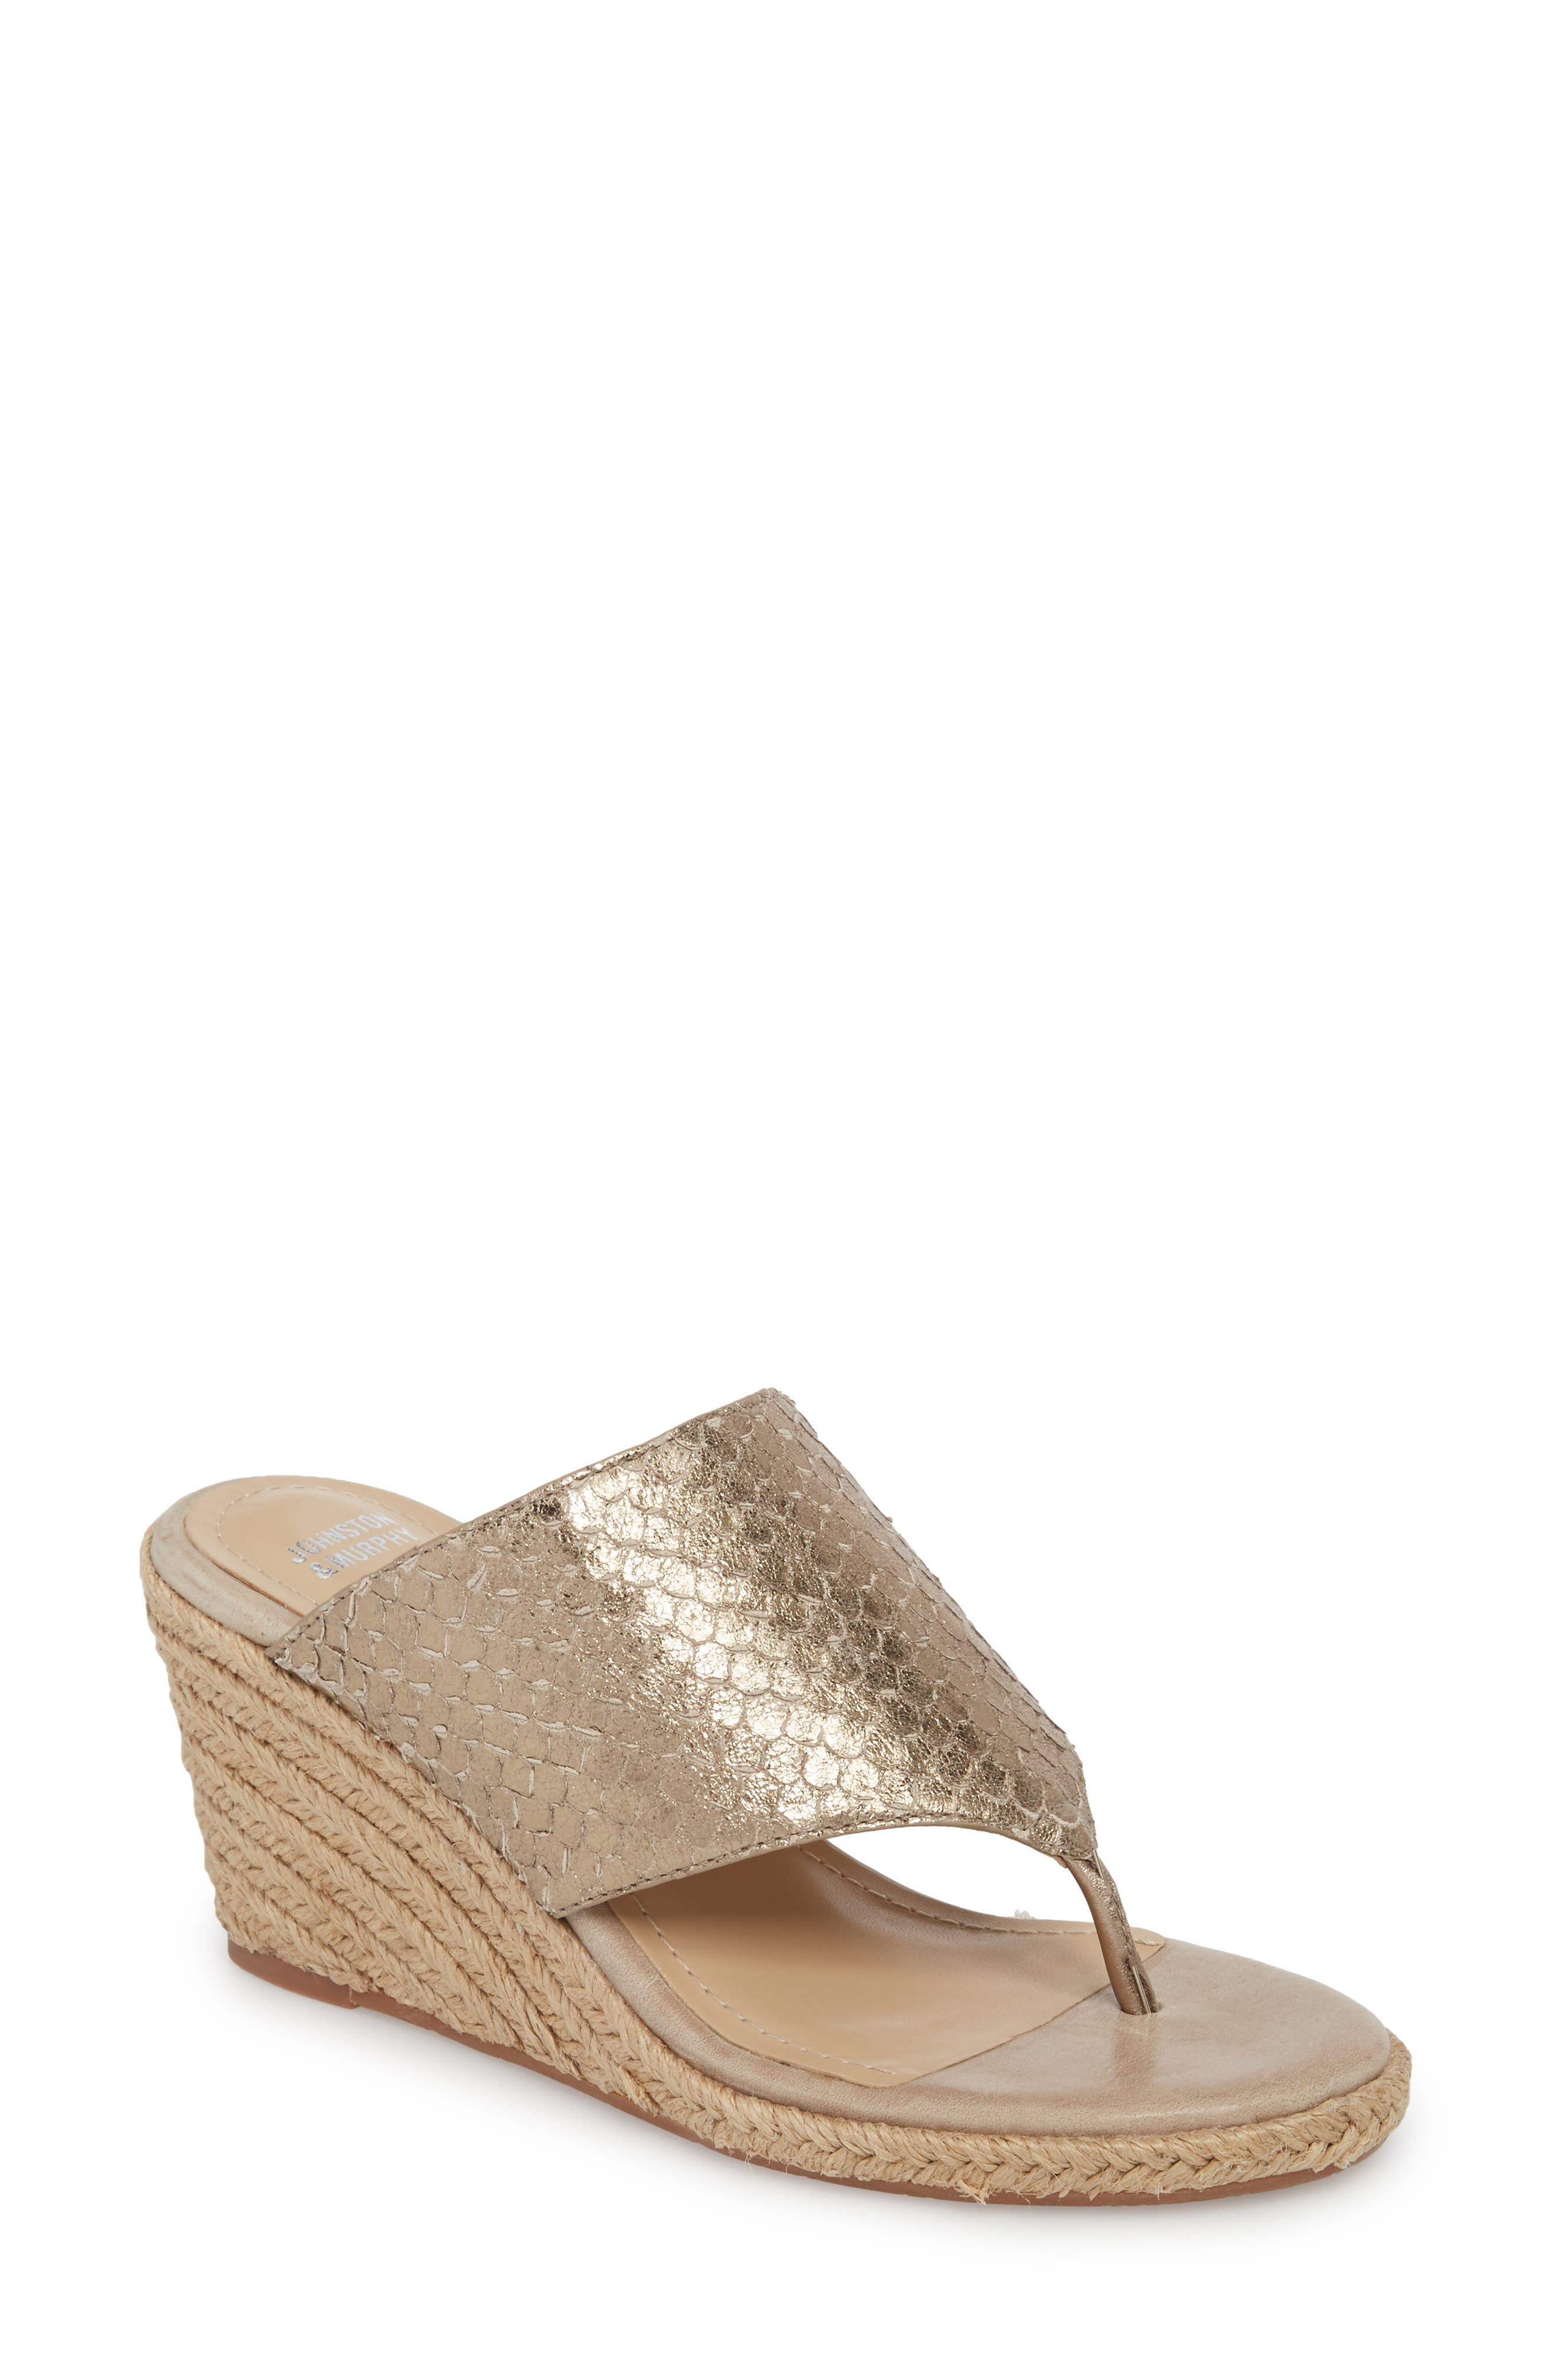 Gretchen Wedge Mule,                         Main,                         color, Pewter Metallic Print Leather